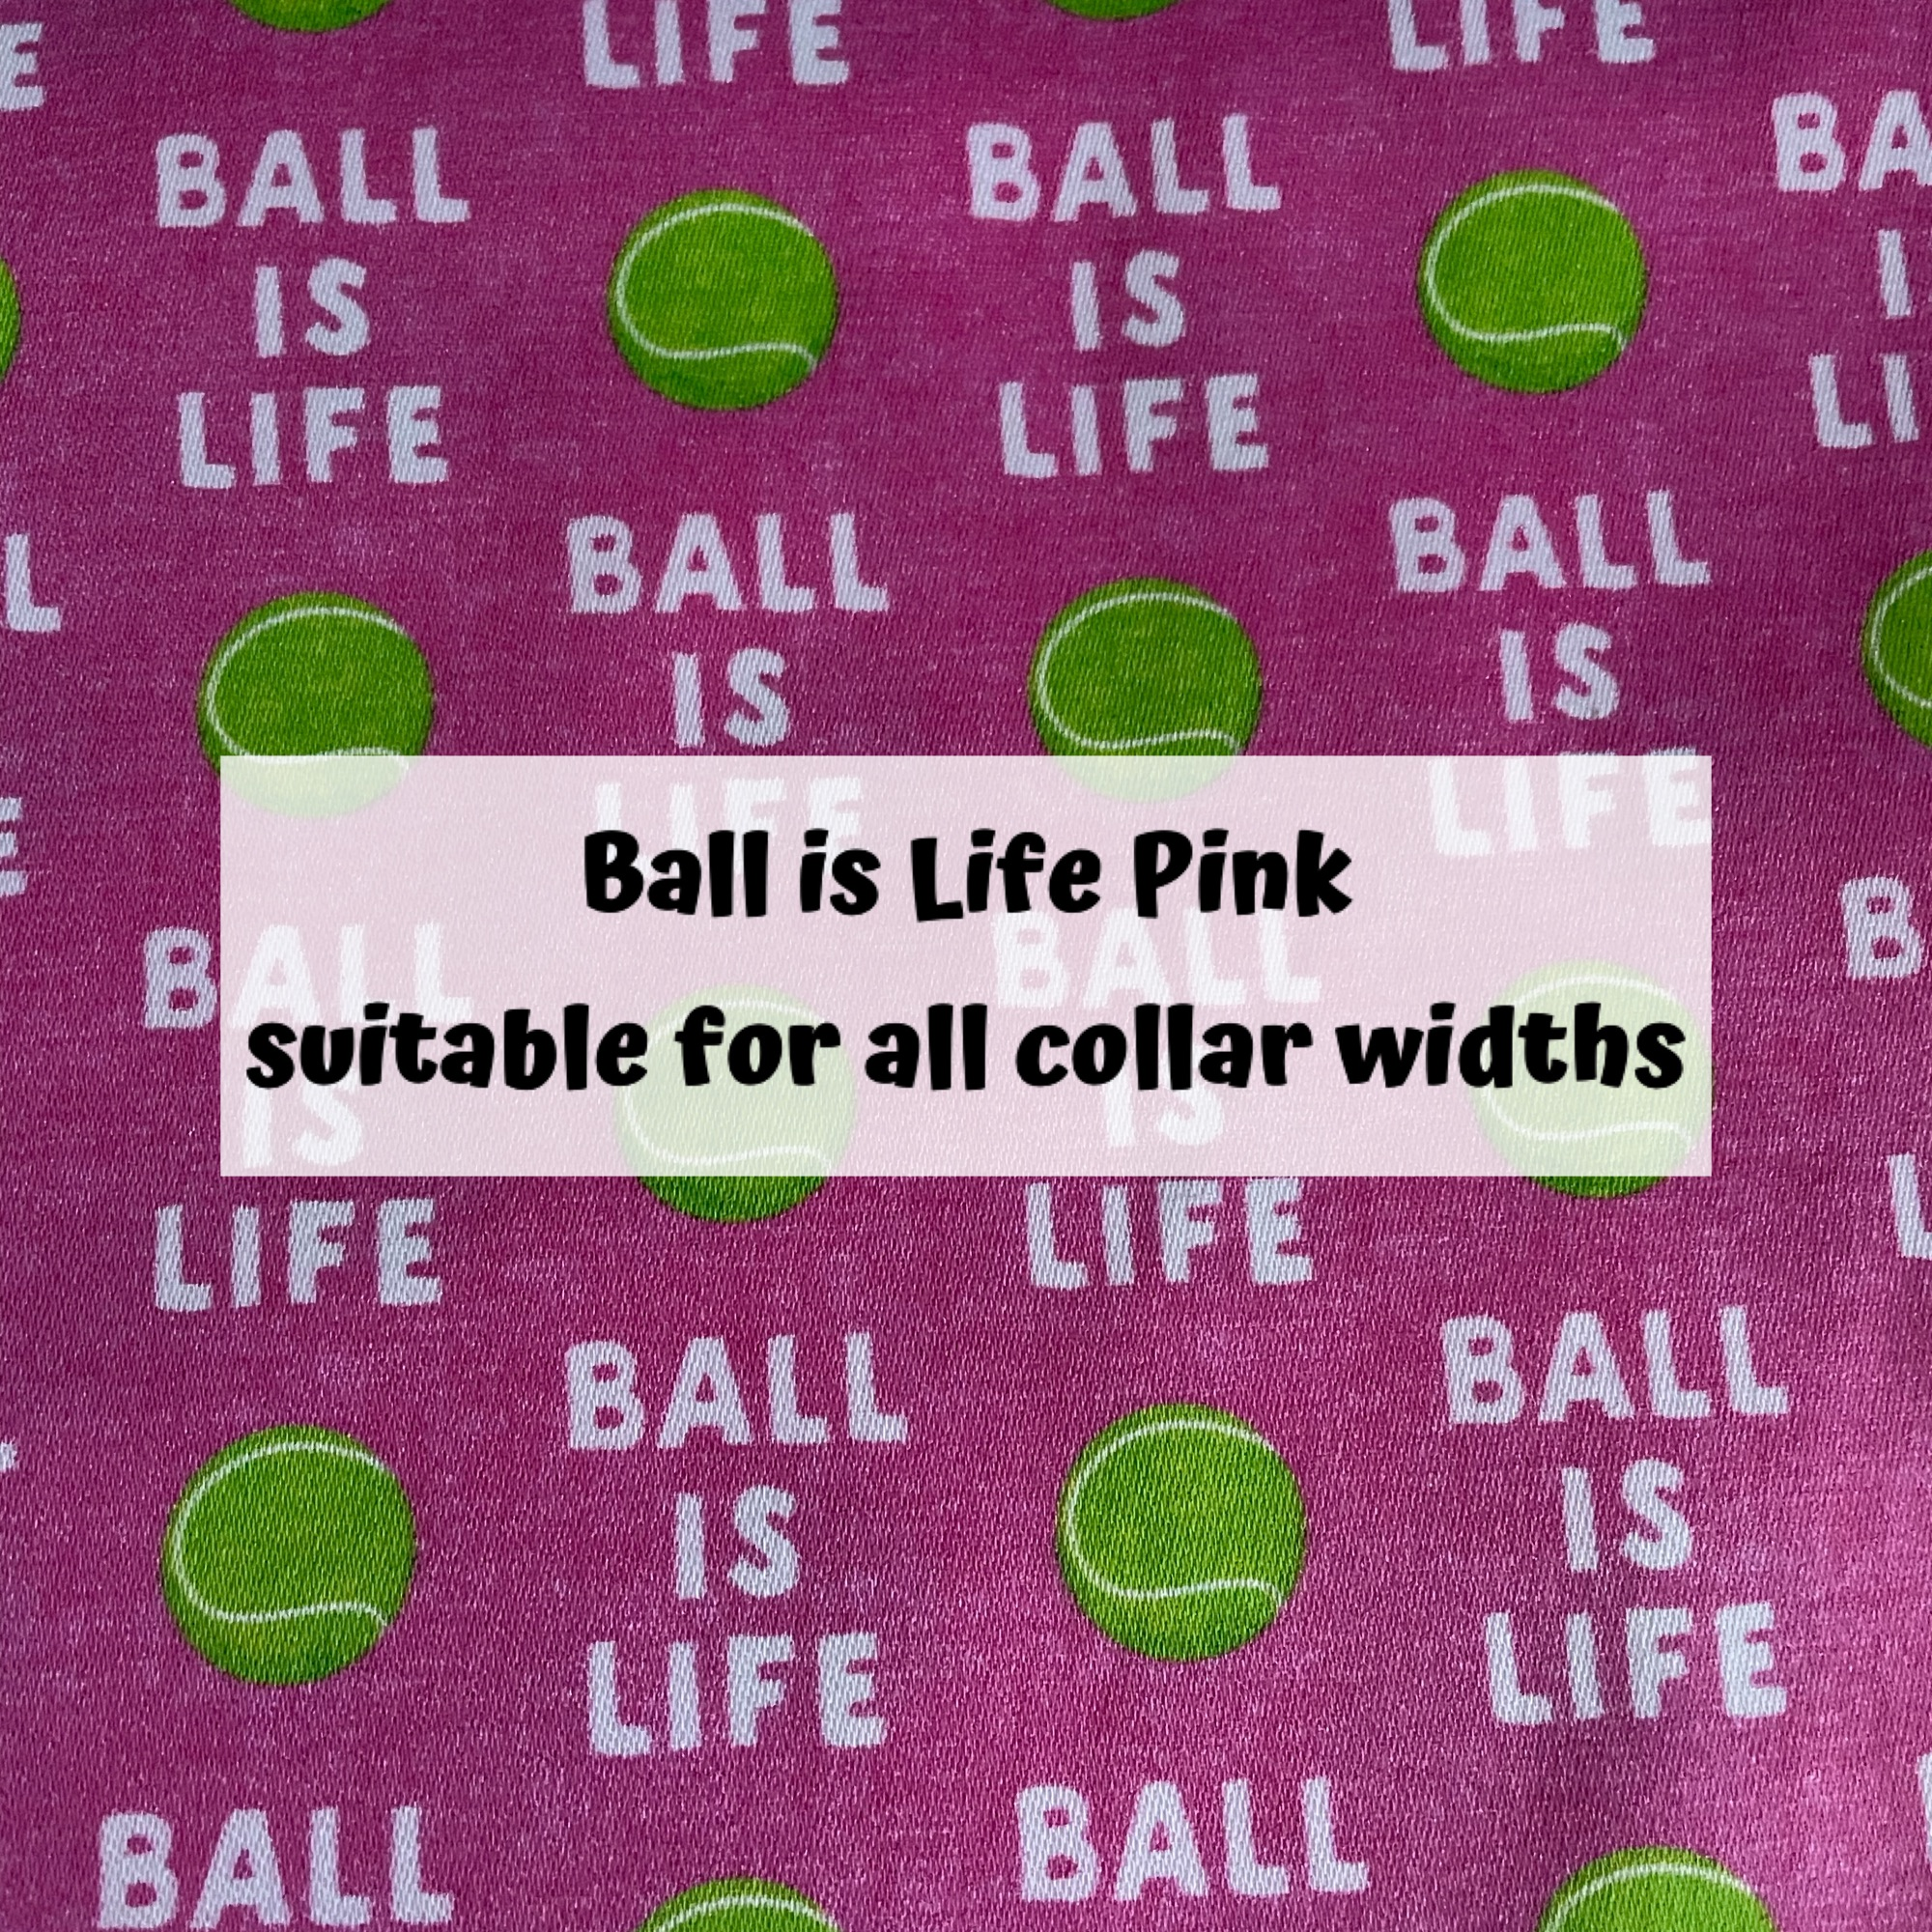 Ball is Life Pink